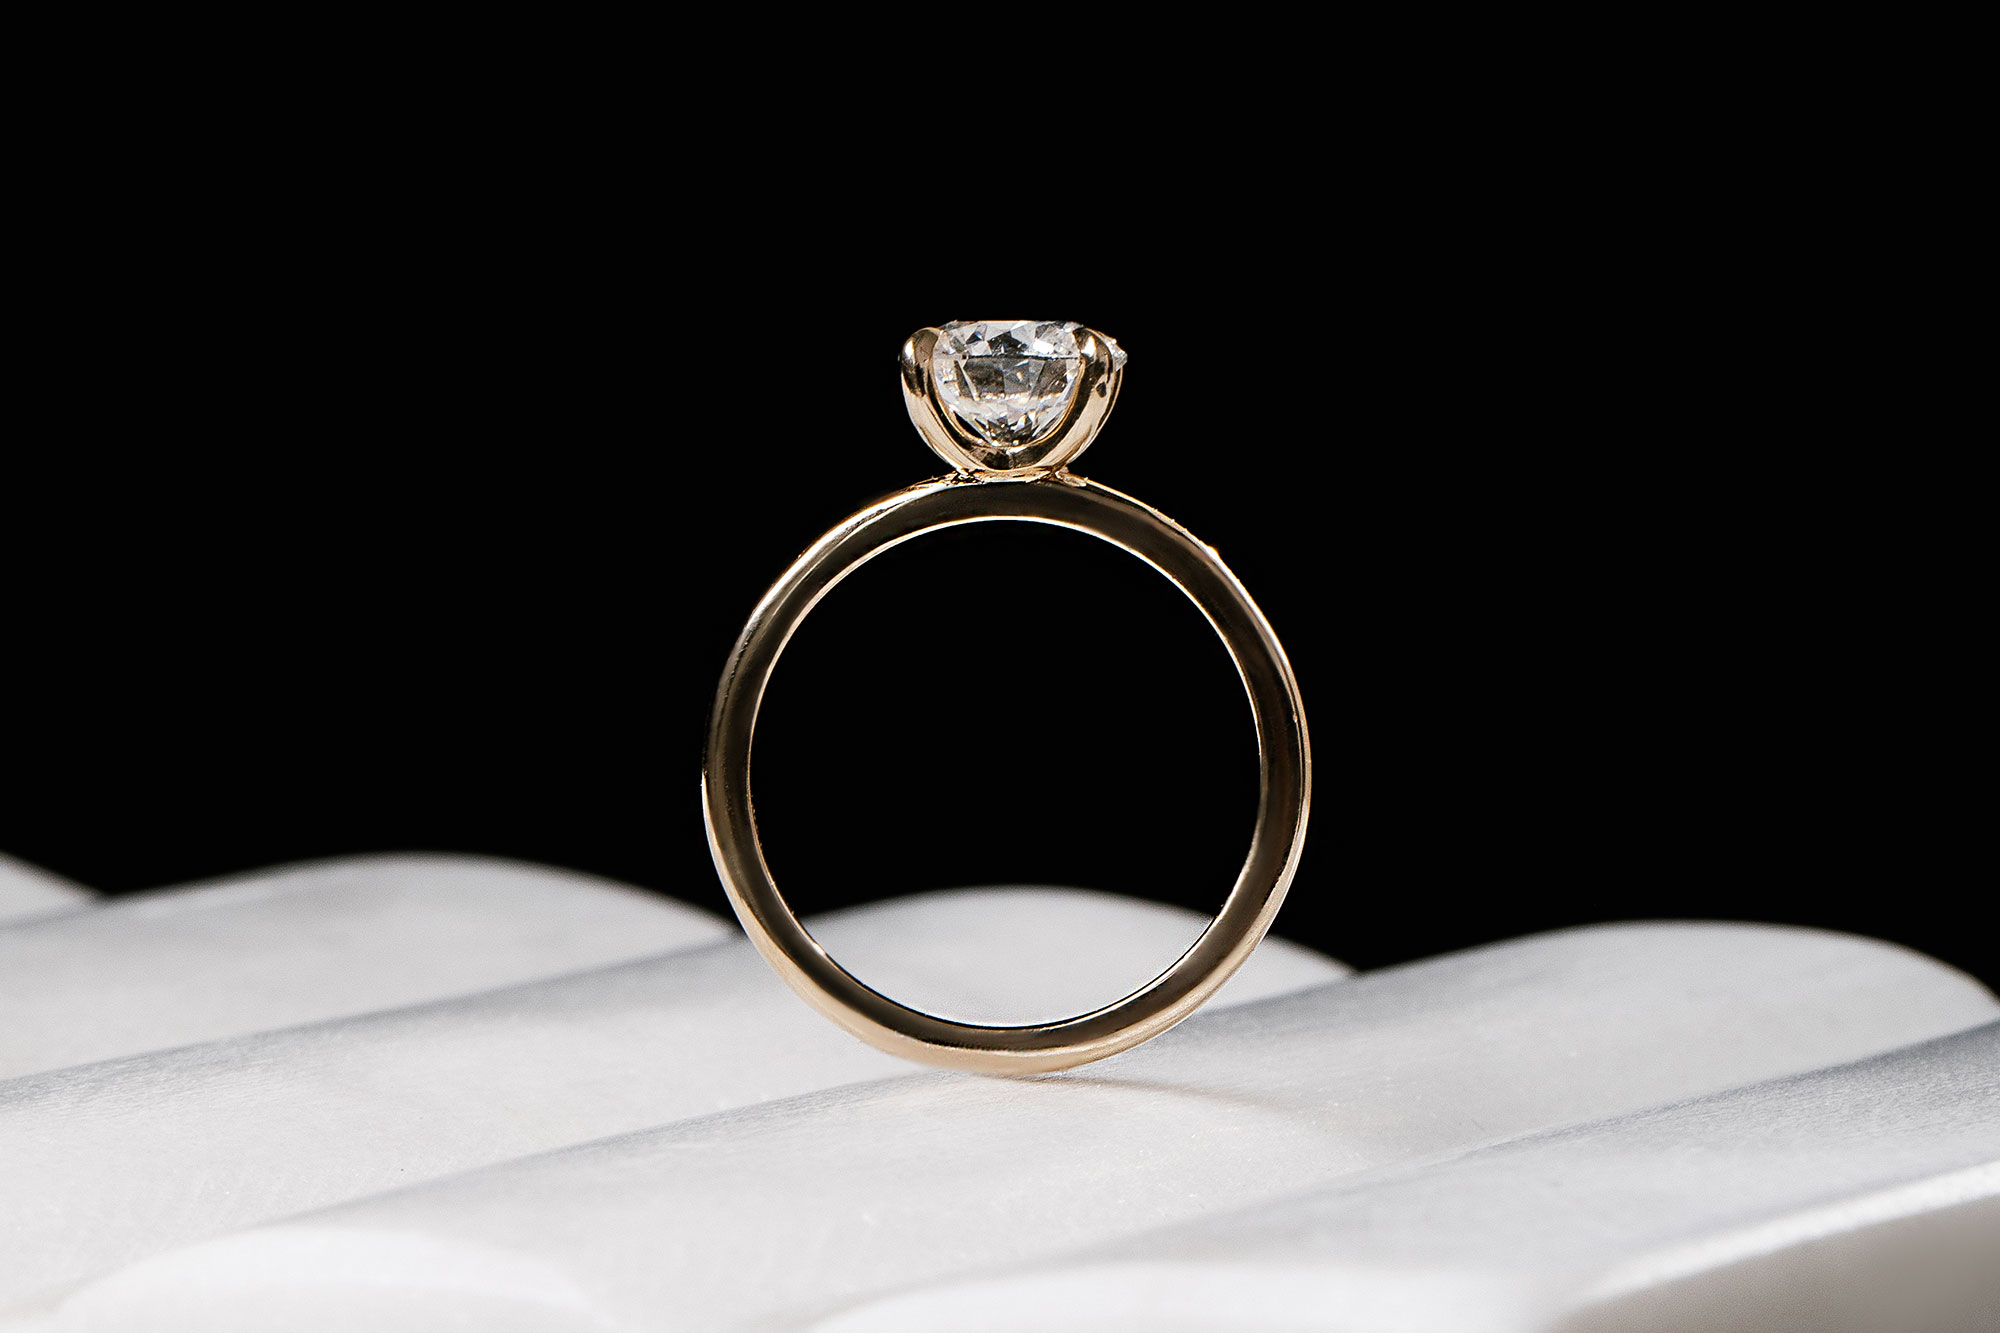 The classic round brilliant engagement ring with yellow gold band